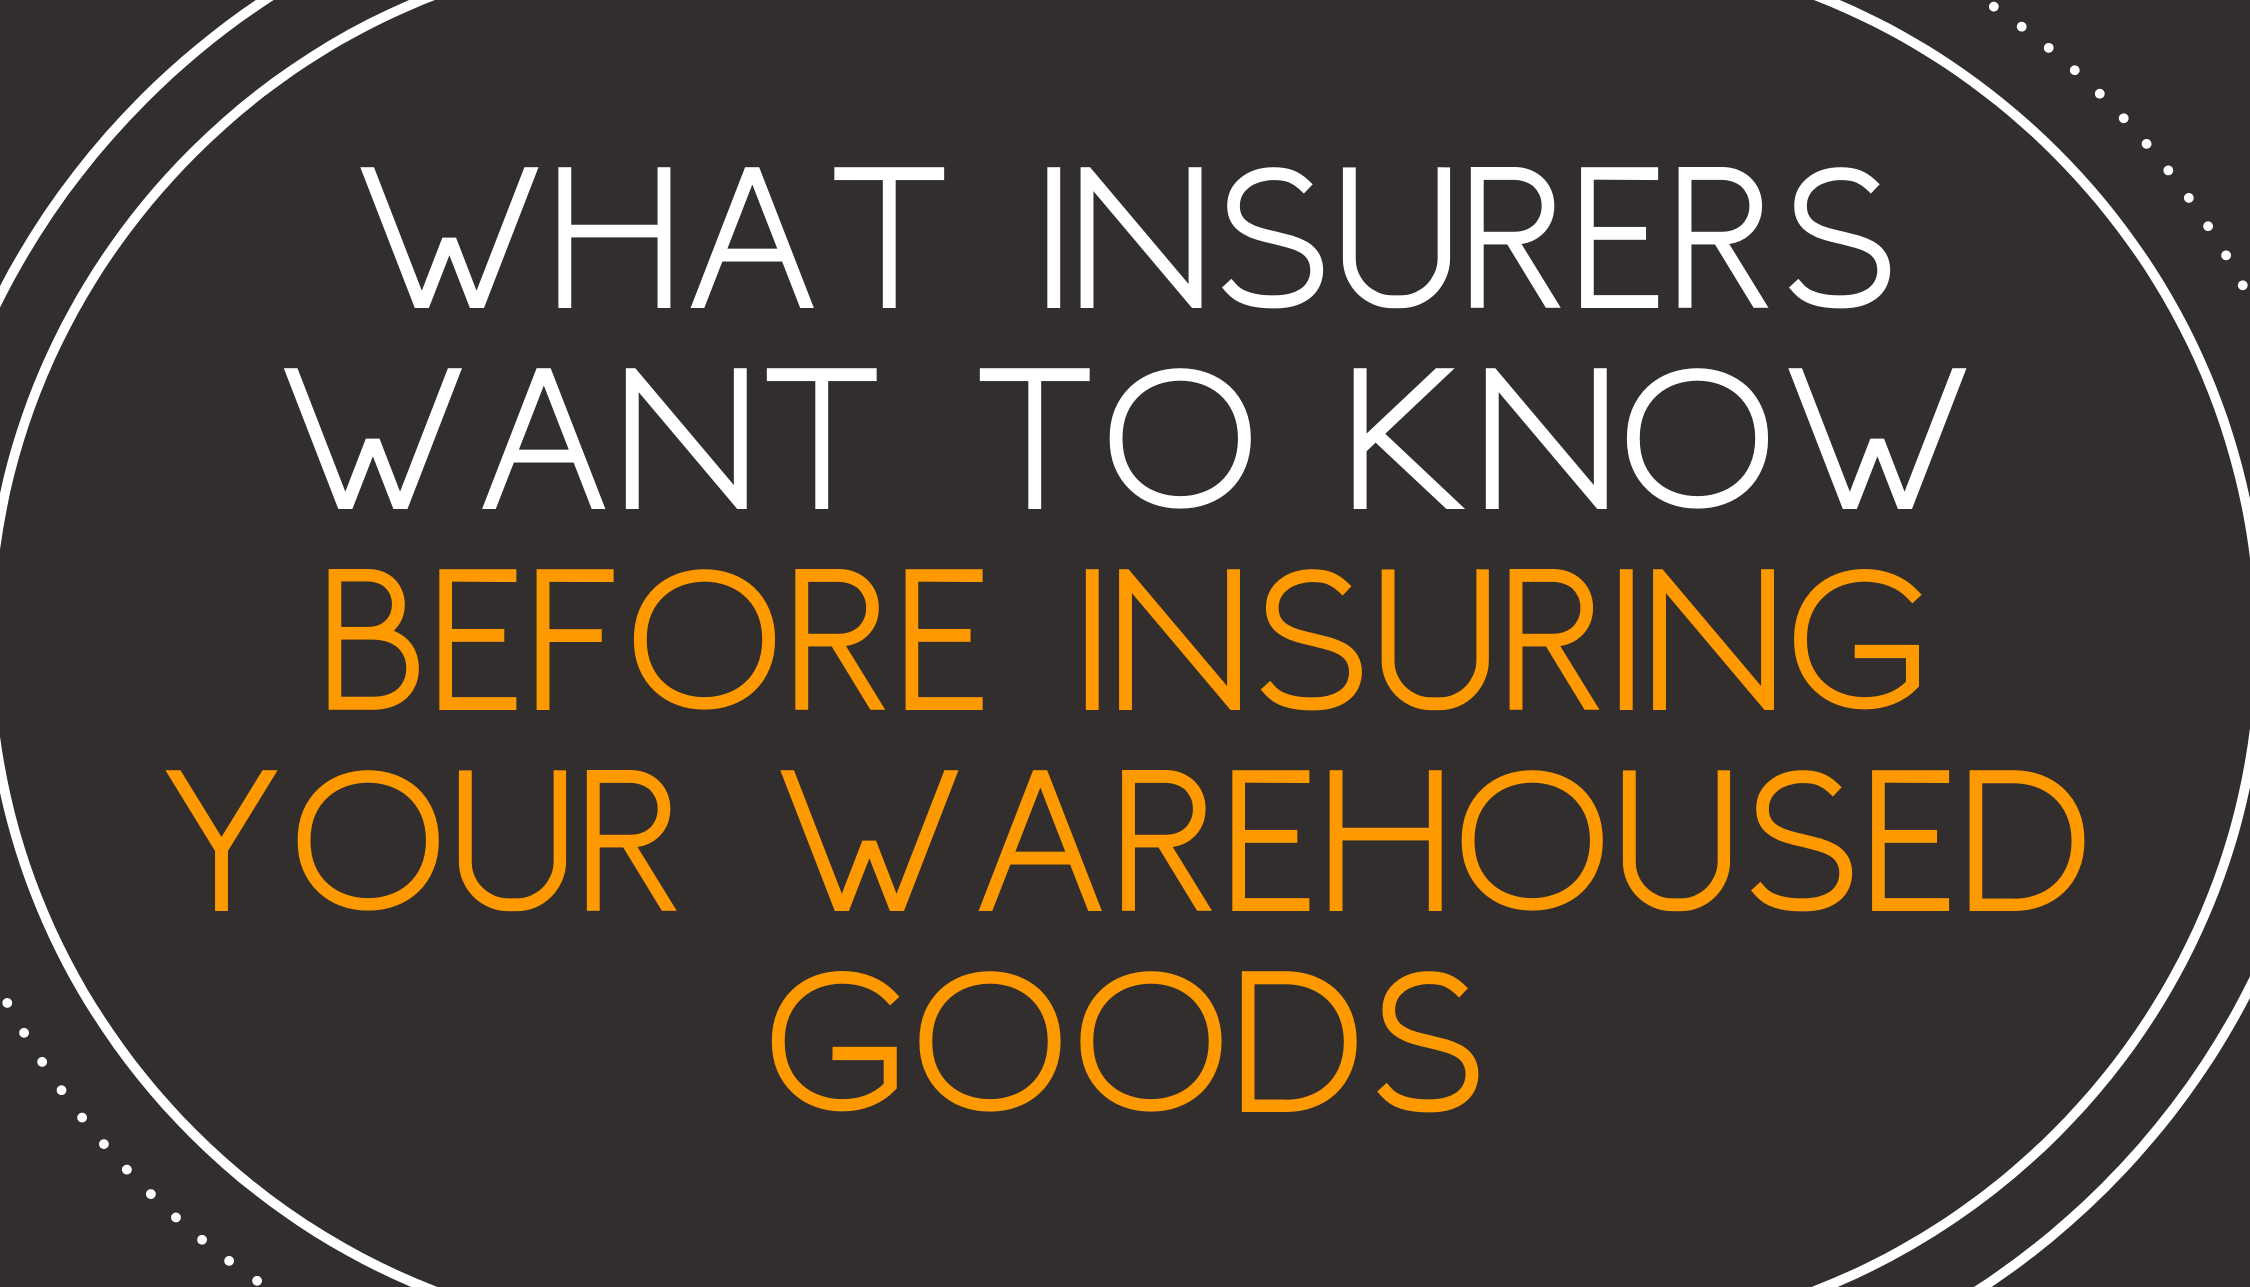 What Insurers Want to Know Before Insuring Your Warehouse Goods